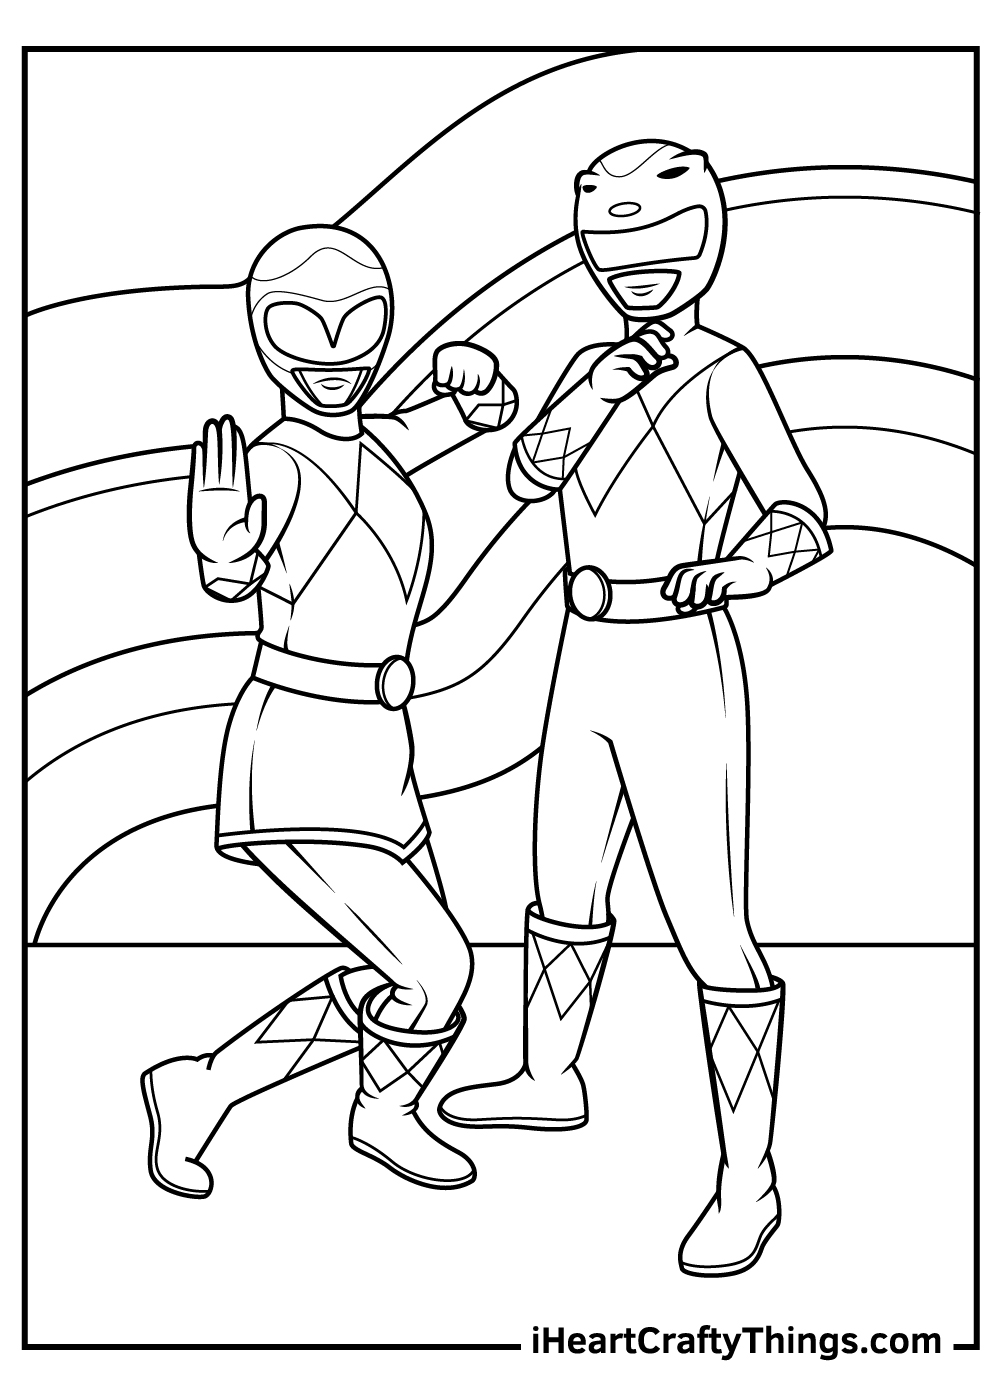 Printable Power Rangers Coloring Pages Updated 18